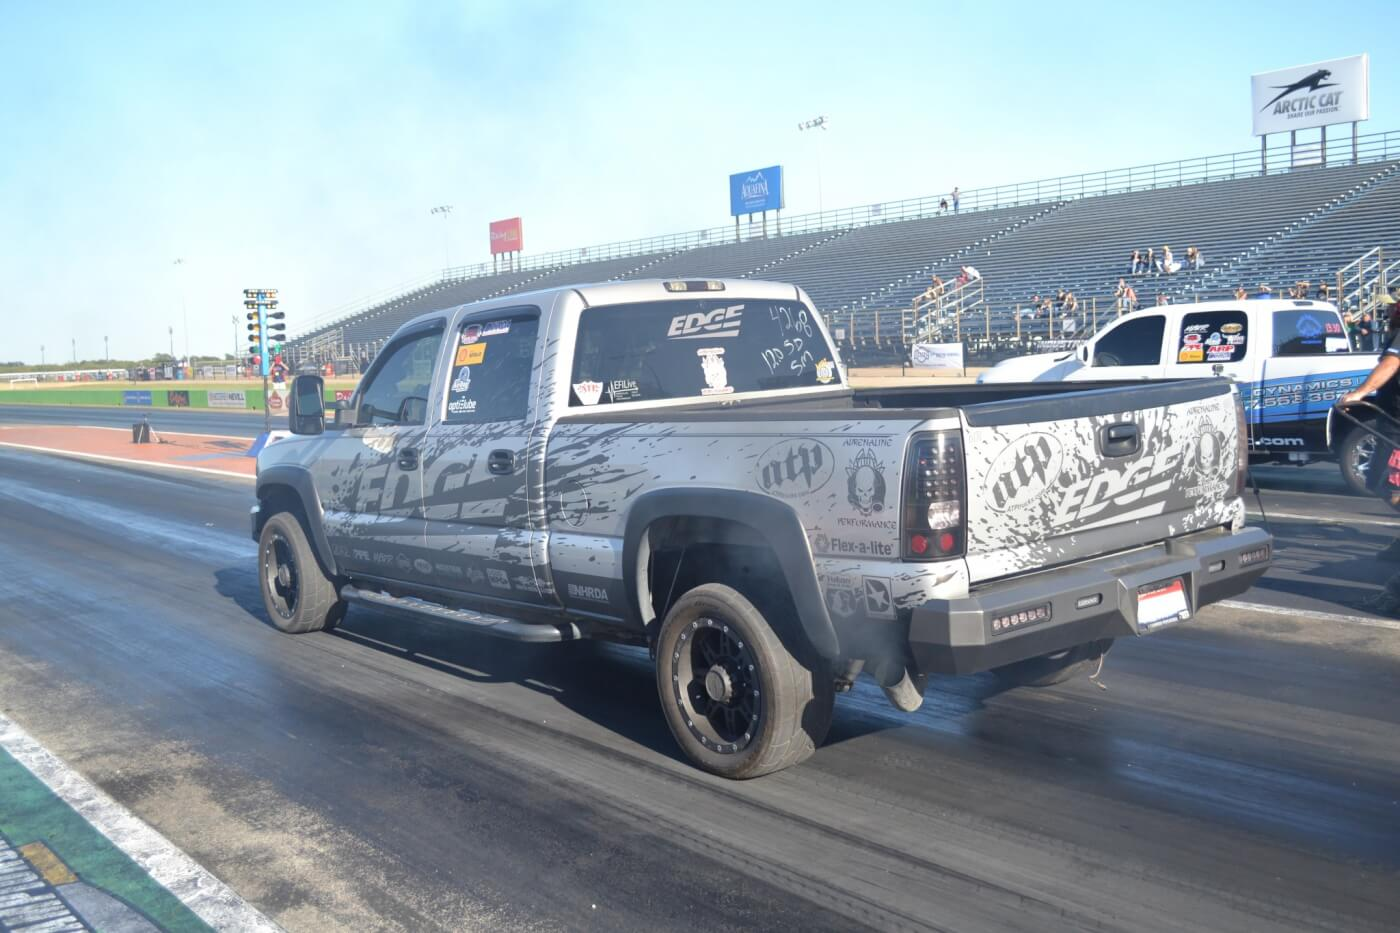 One of the fiercest competitors on the drag strip is Verlon Southwick, who made it to the final rounds of both Super Diesel and Sportsman. Verlon won the Super Diesel class, which also gave him the overall National Championship.